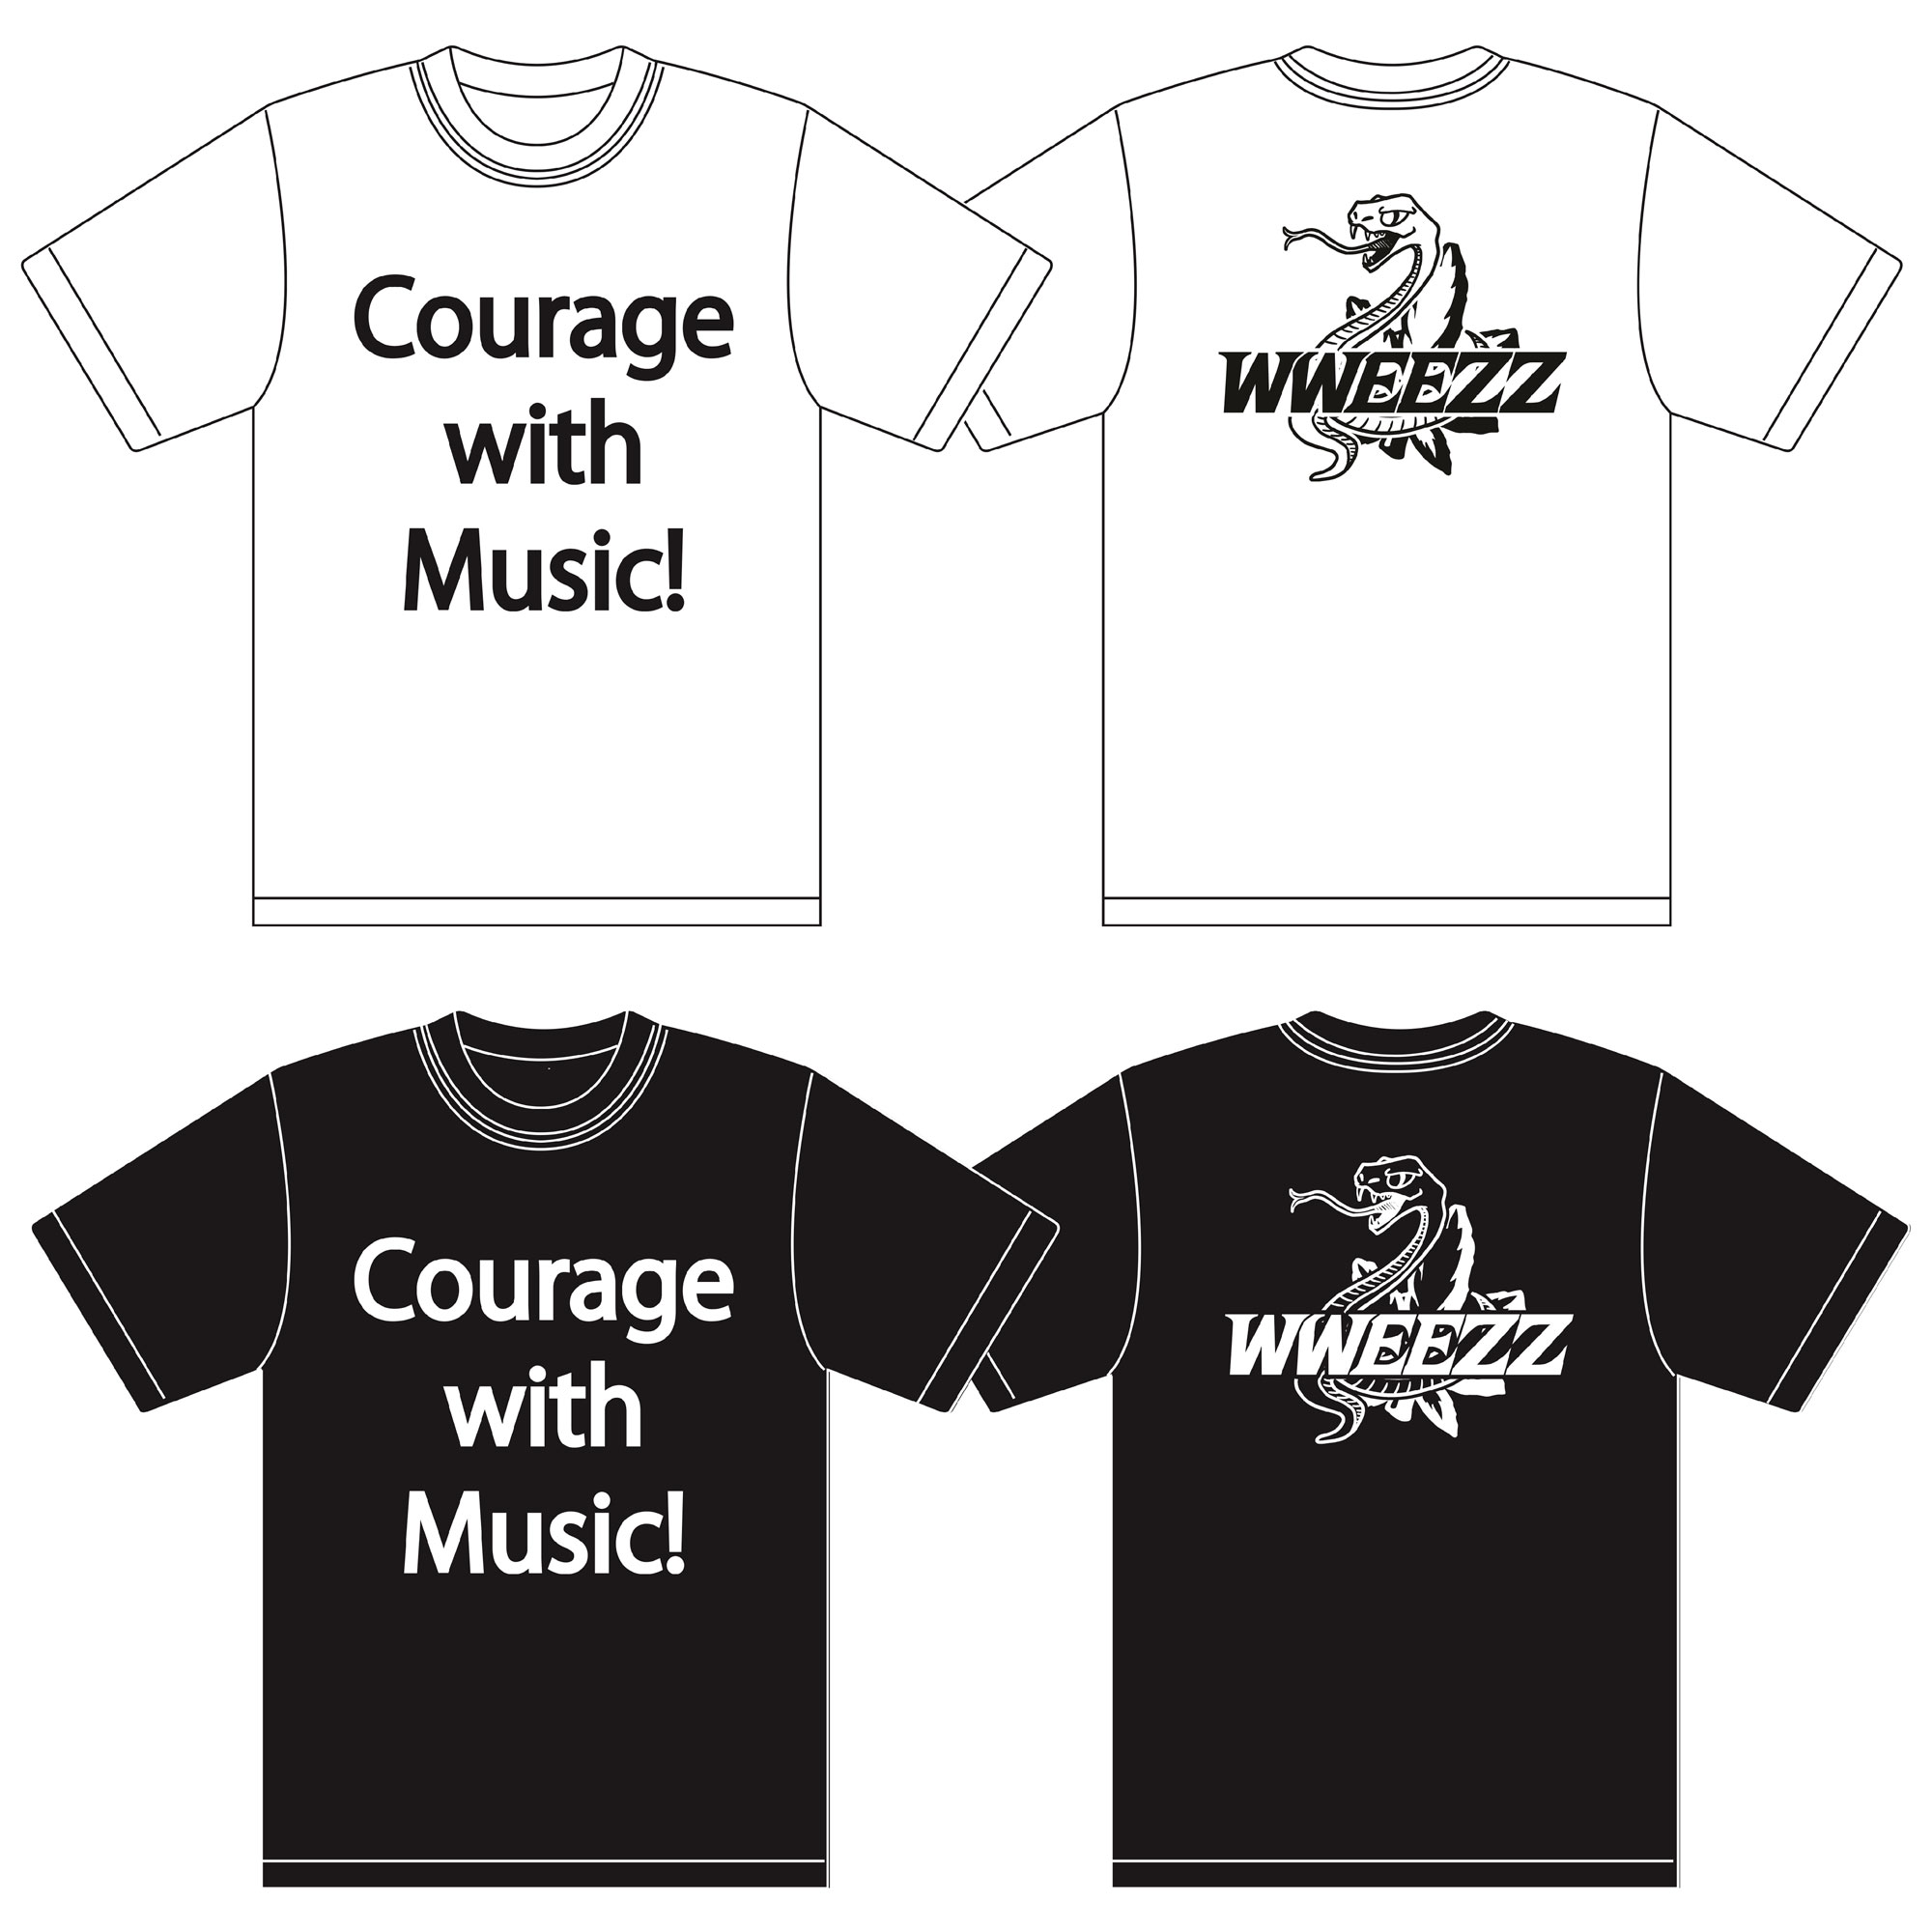 〜Courage with Music!〜 限定Tシャツ